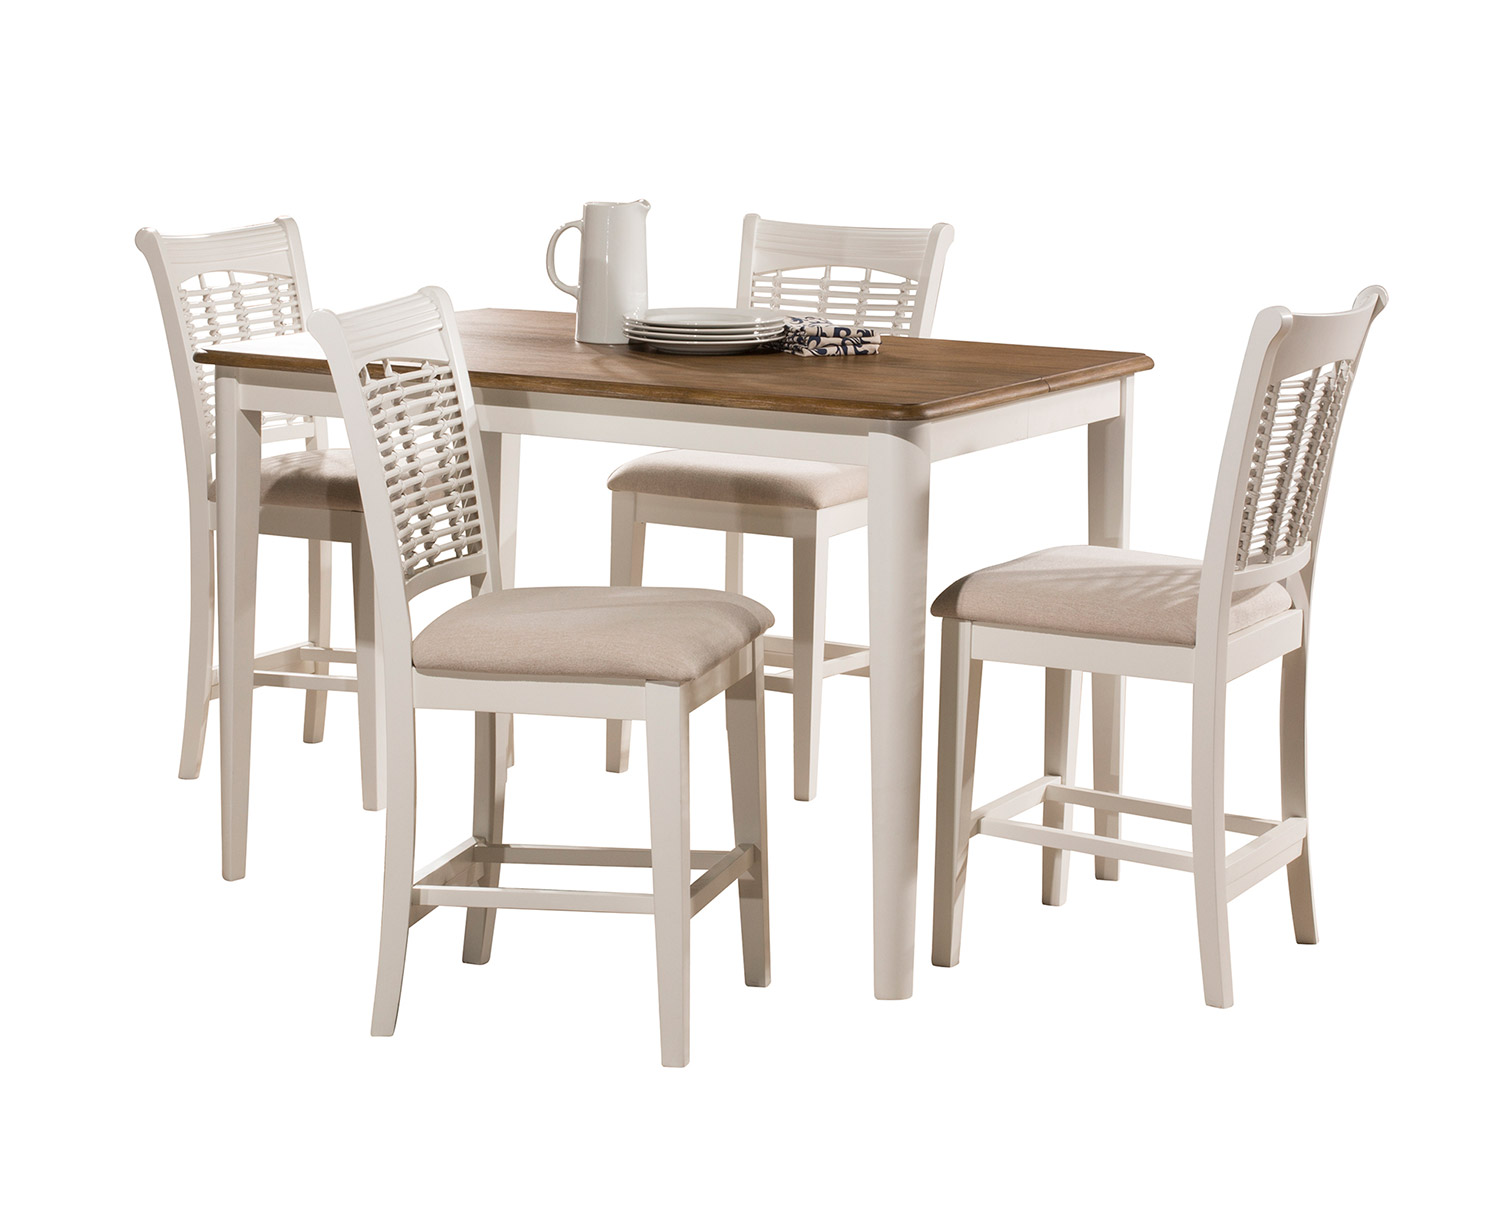 Hillsdale Bayberry 5-Piece Counter Height Dining Set - White/Driftwood